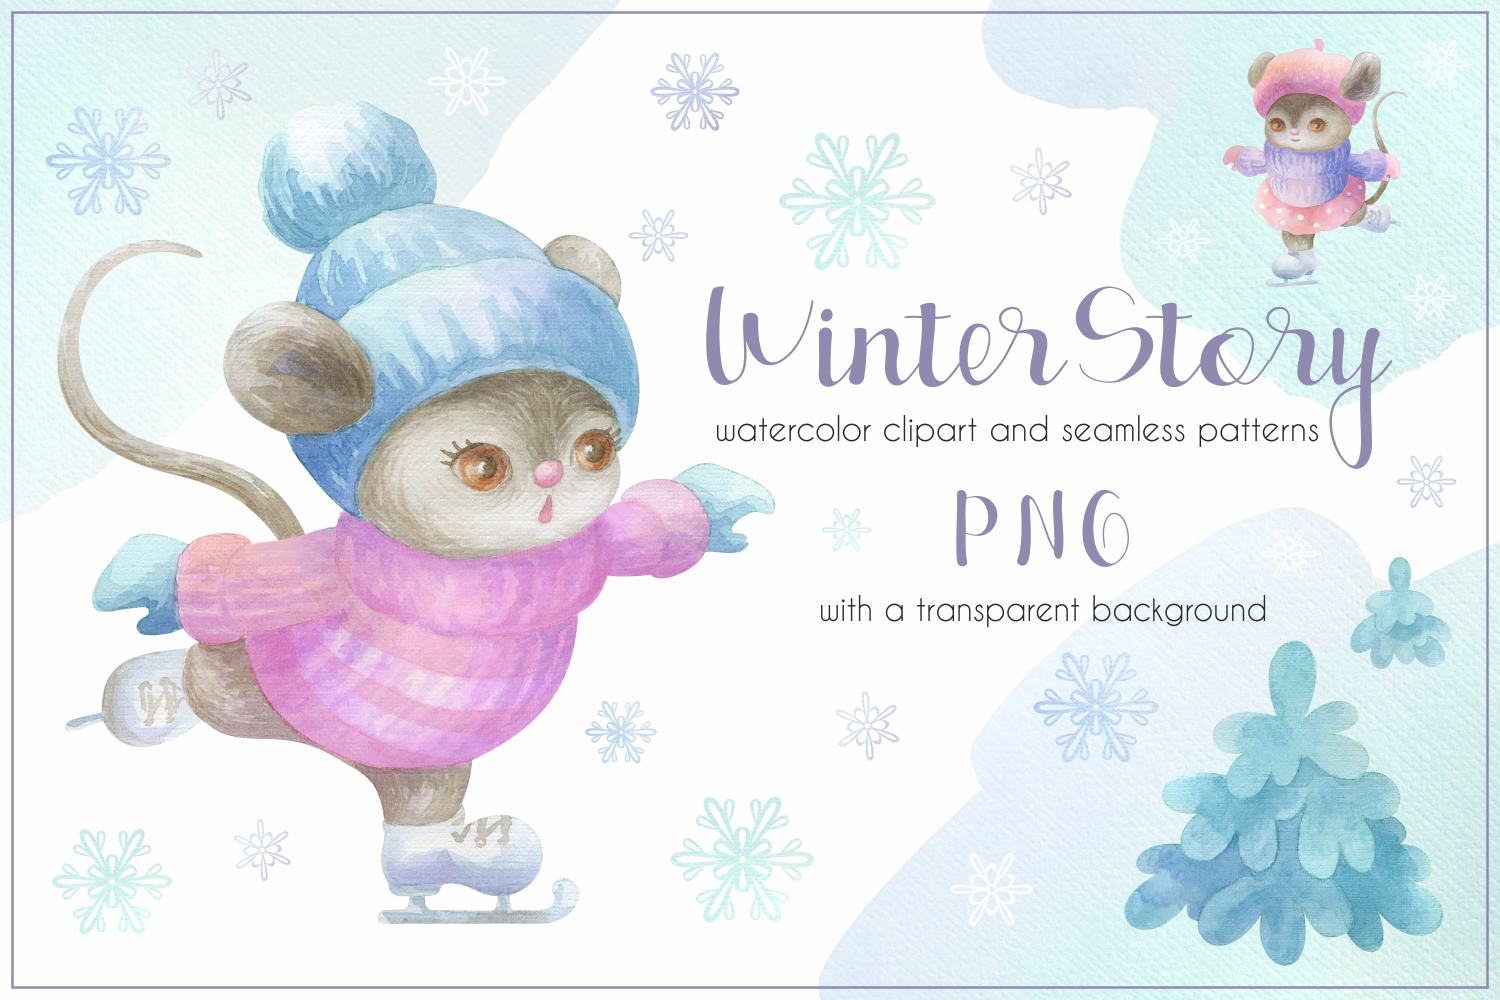 Winter story. Cute little mice. Watercolor set example image 1